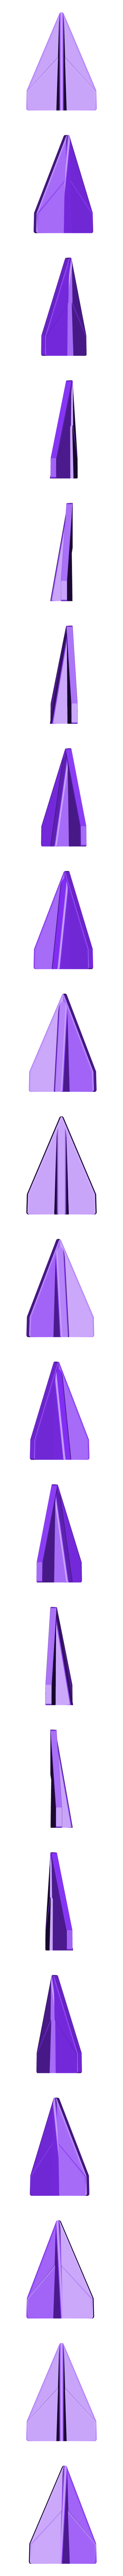 Paper plane.stl Download free STL file Iconic Paper Plane (Stratomaker) • Object to 3D print, clockspring